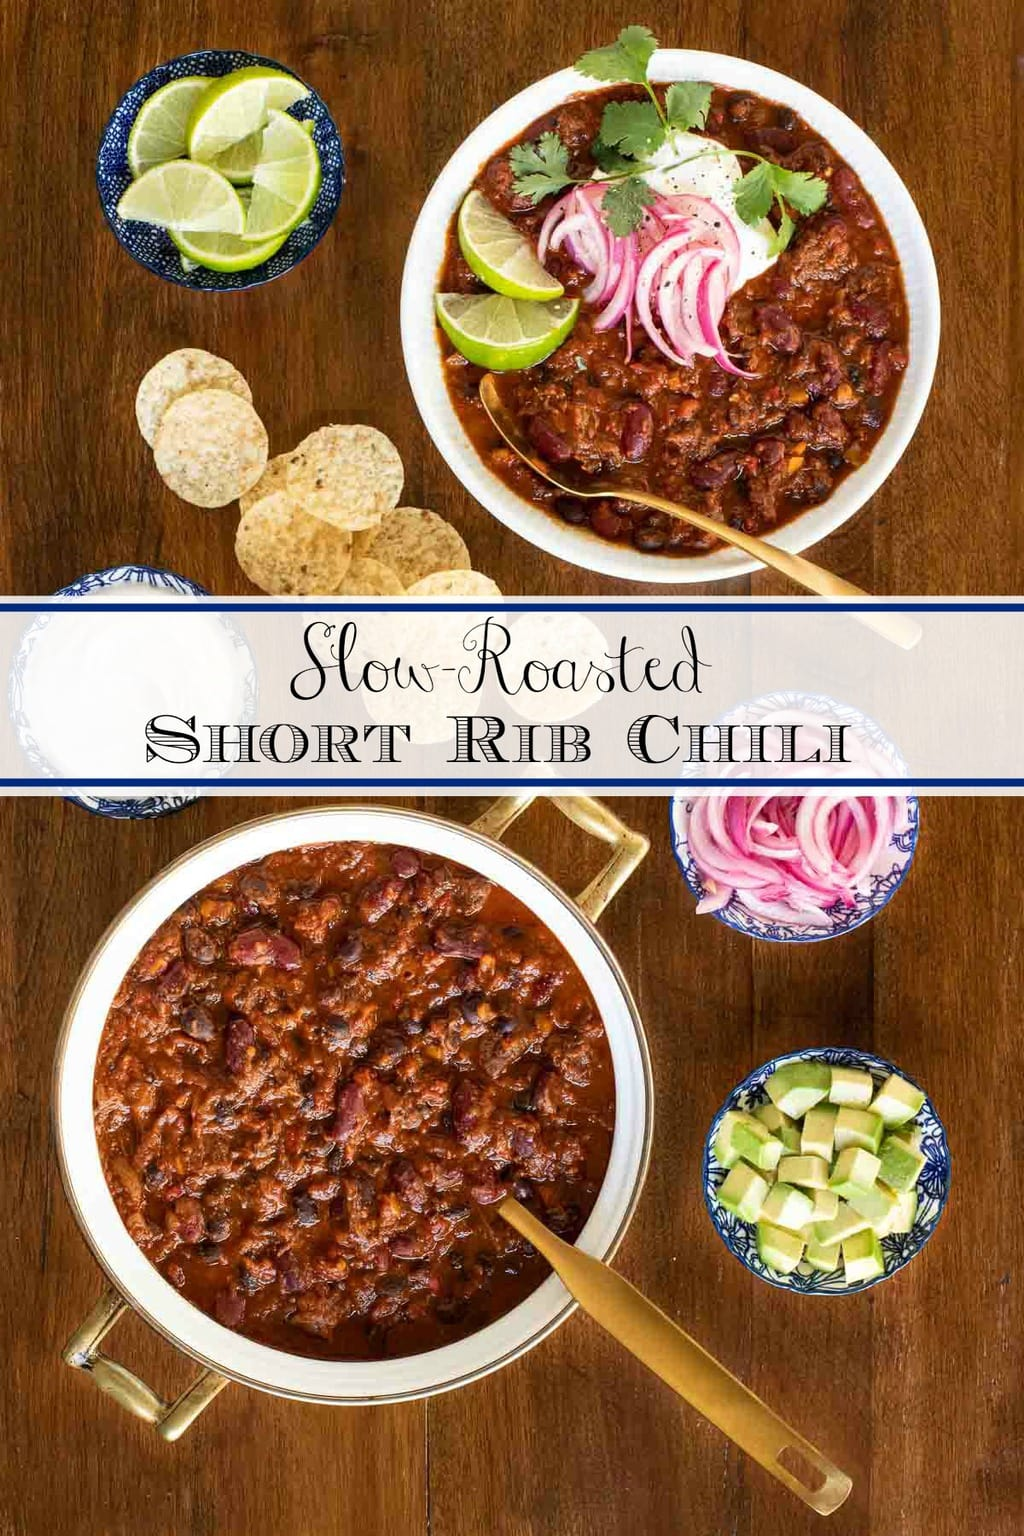 Slow Roasted Short Rib Chili